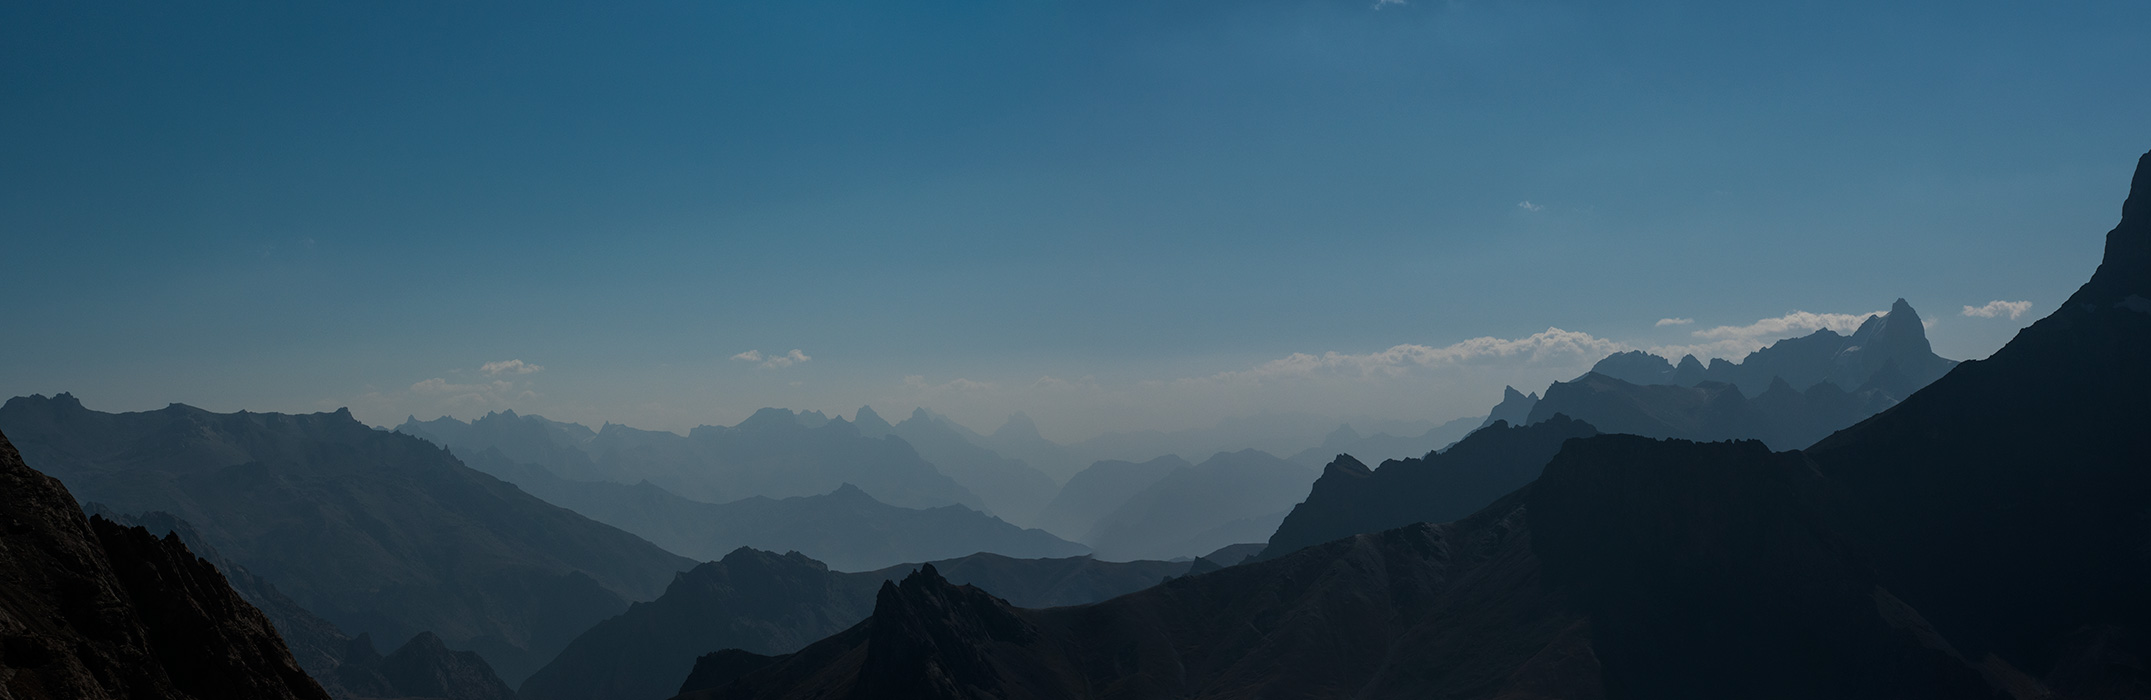 Panorama view east from the Alaudin Pass in the Fann Mountains, Tajikistan. September 2018.Nikon D300, 60mm. A stitch of three frames.